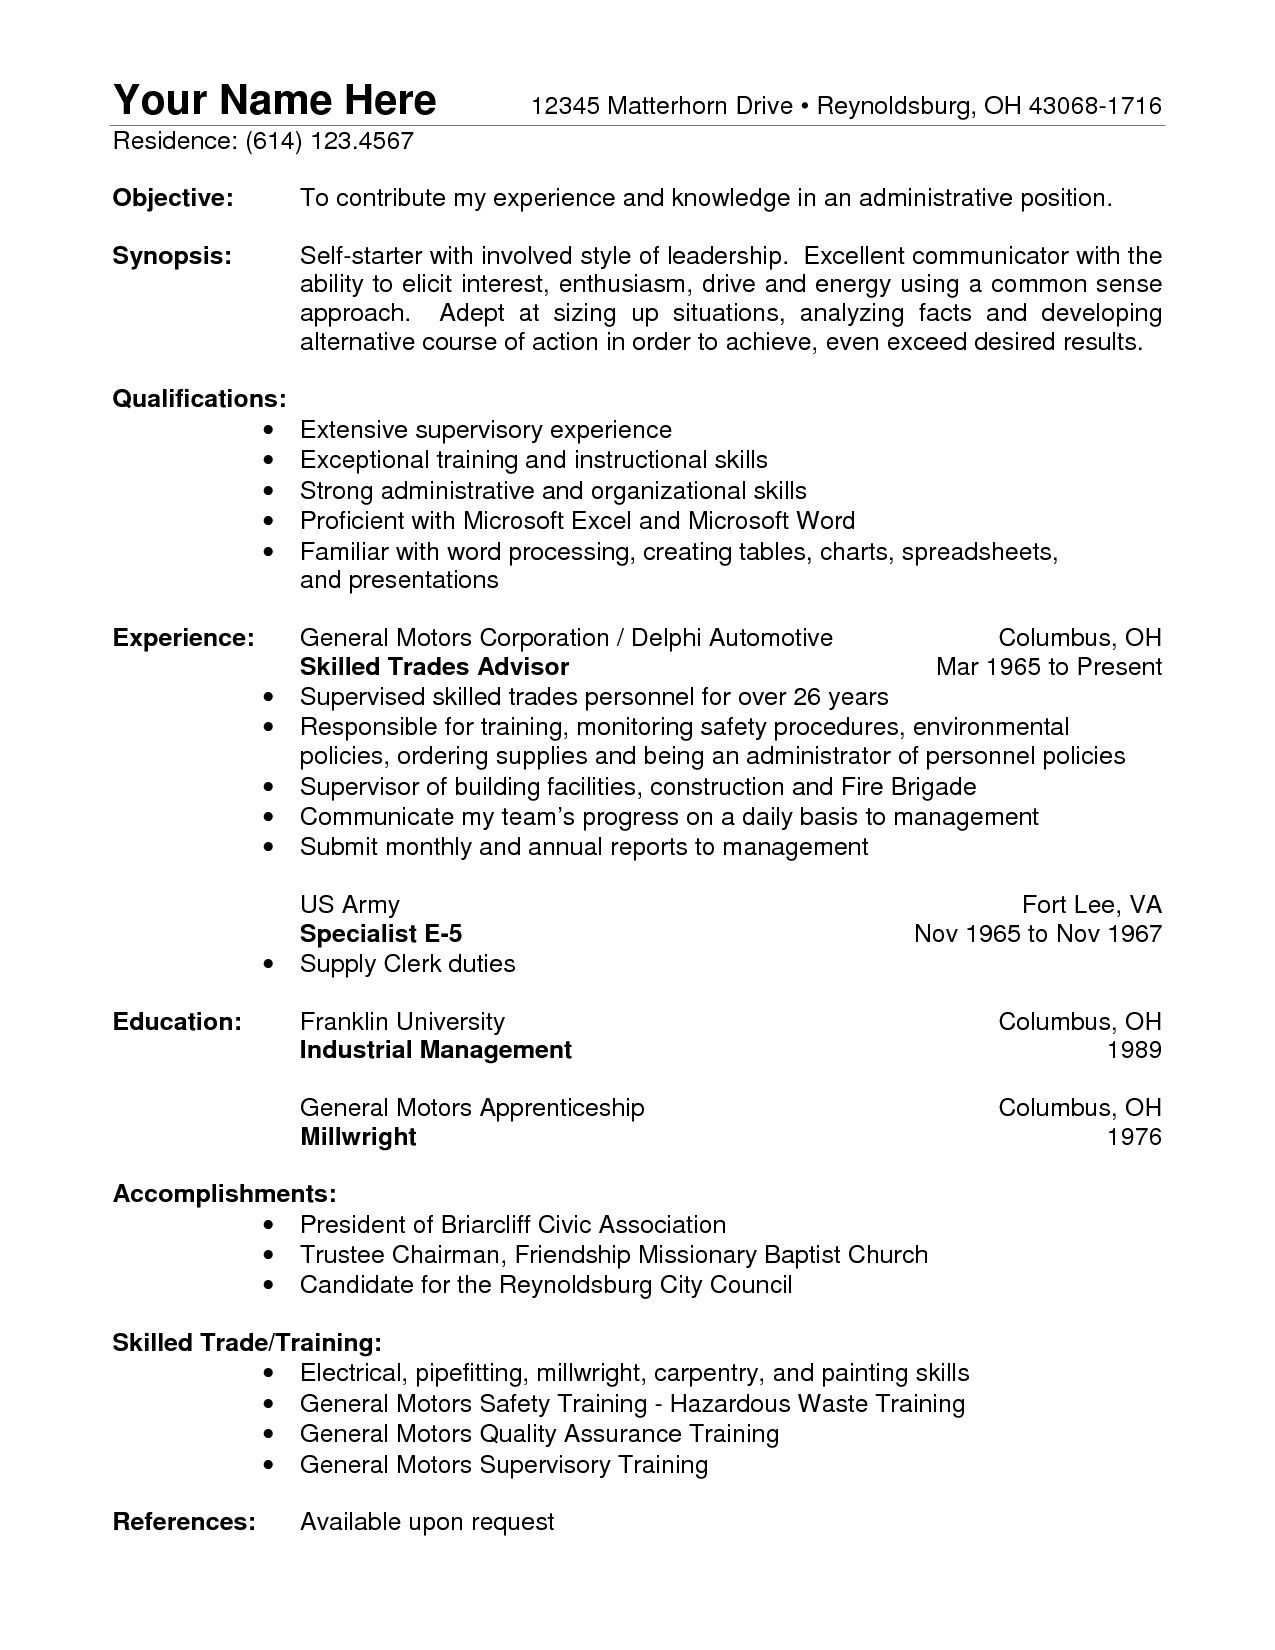 Warehouse Resume Template - Warehouse Resume Template we provide as ...